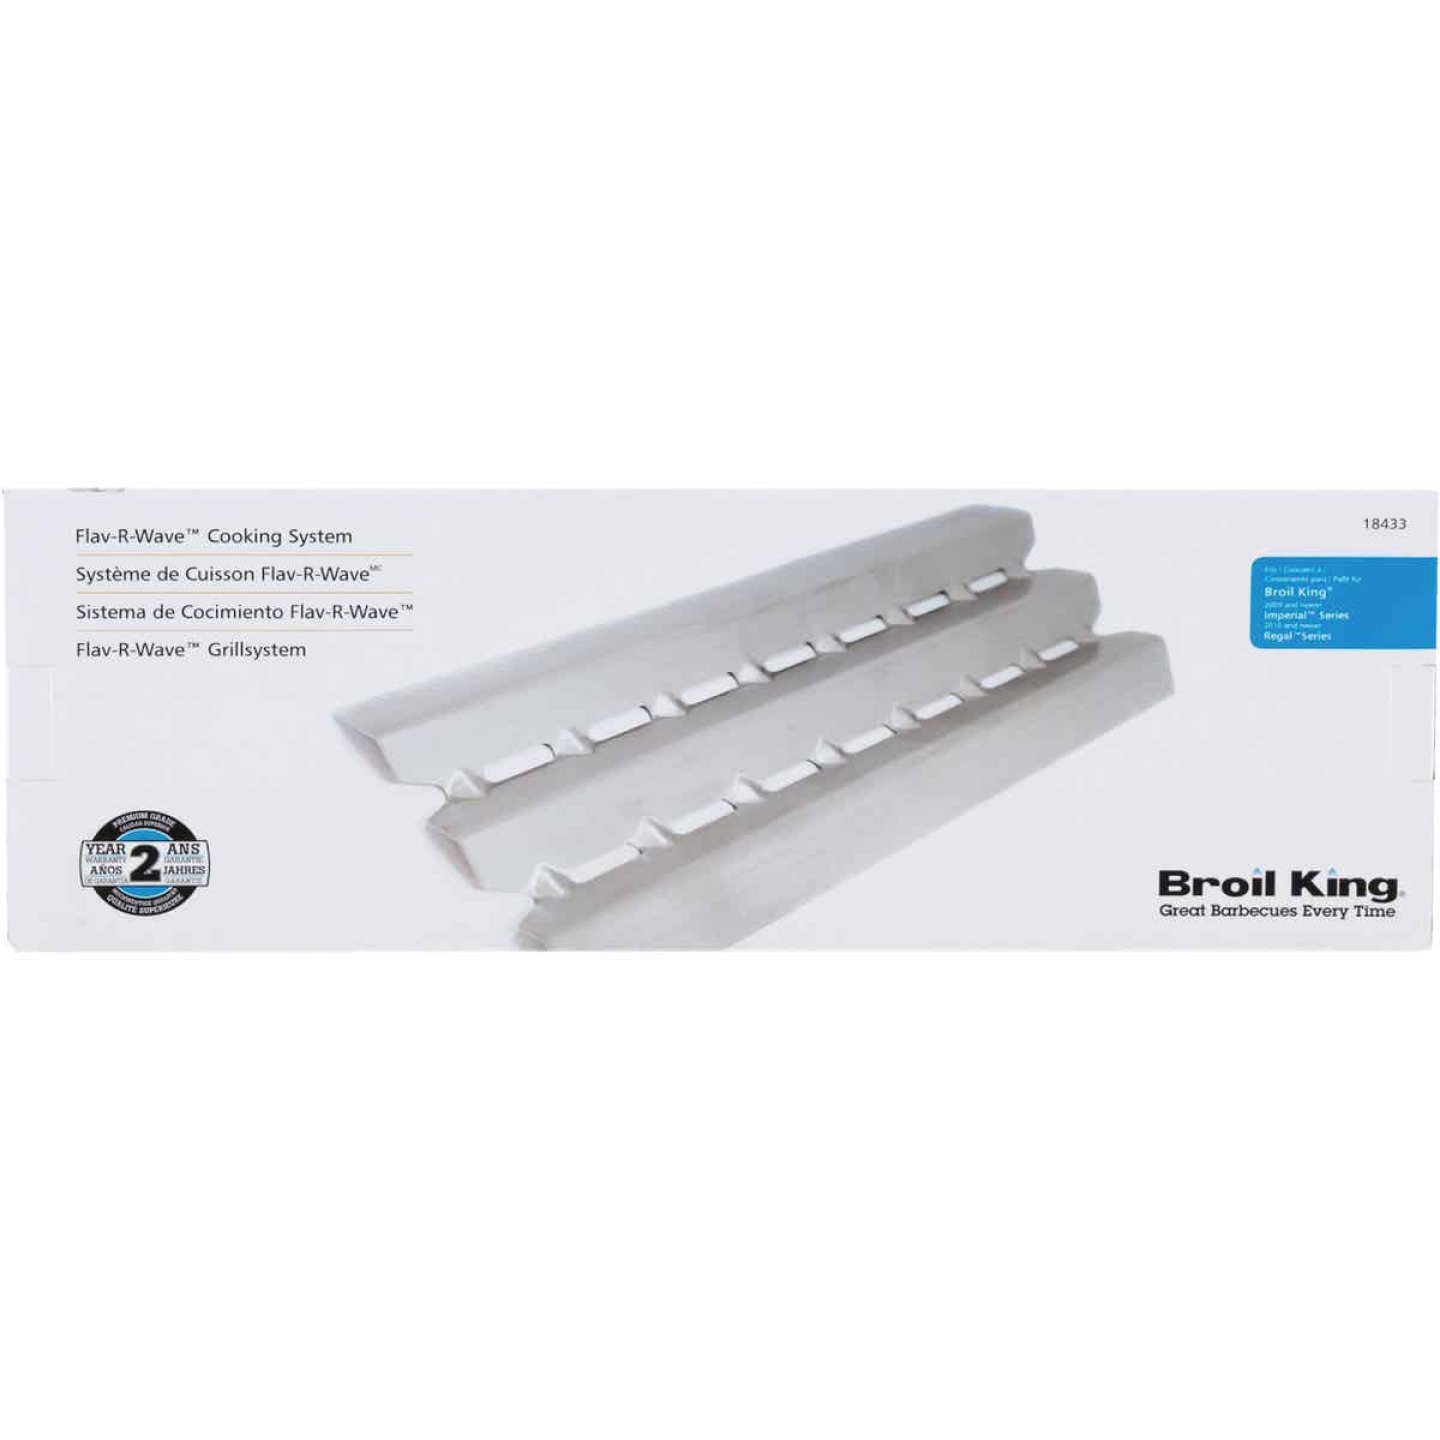 Broil King Regal/Imperial Flav-R-Wave 5.81 In. W. x 17.49 In. D. Stainless Steel Heat Plate Image 2